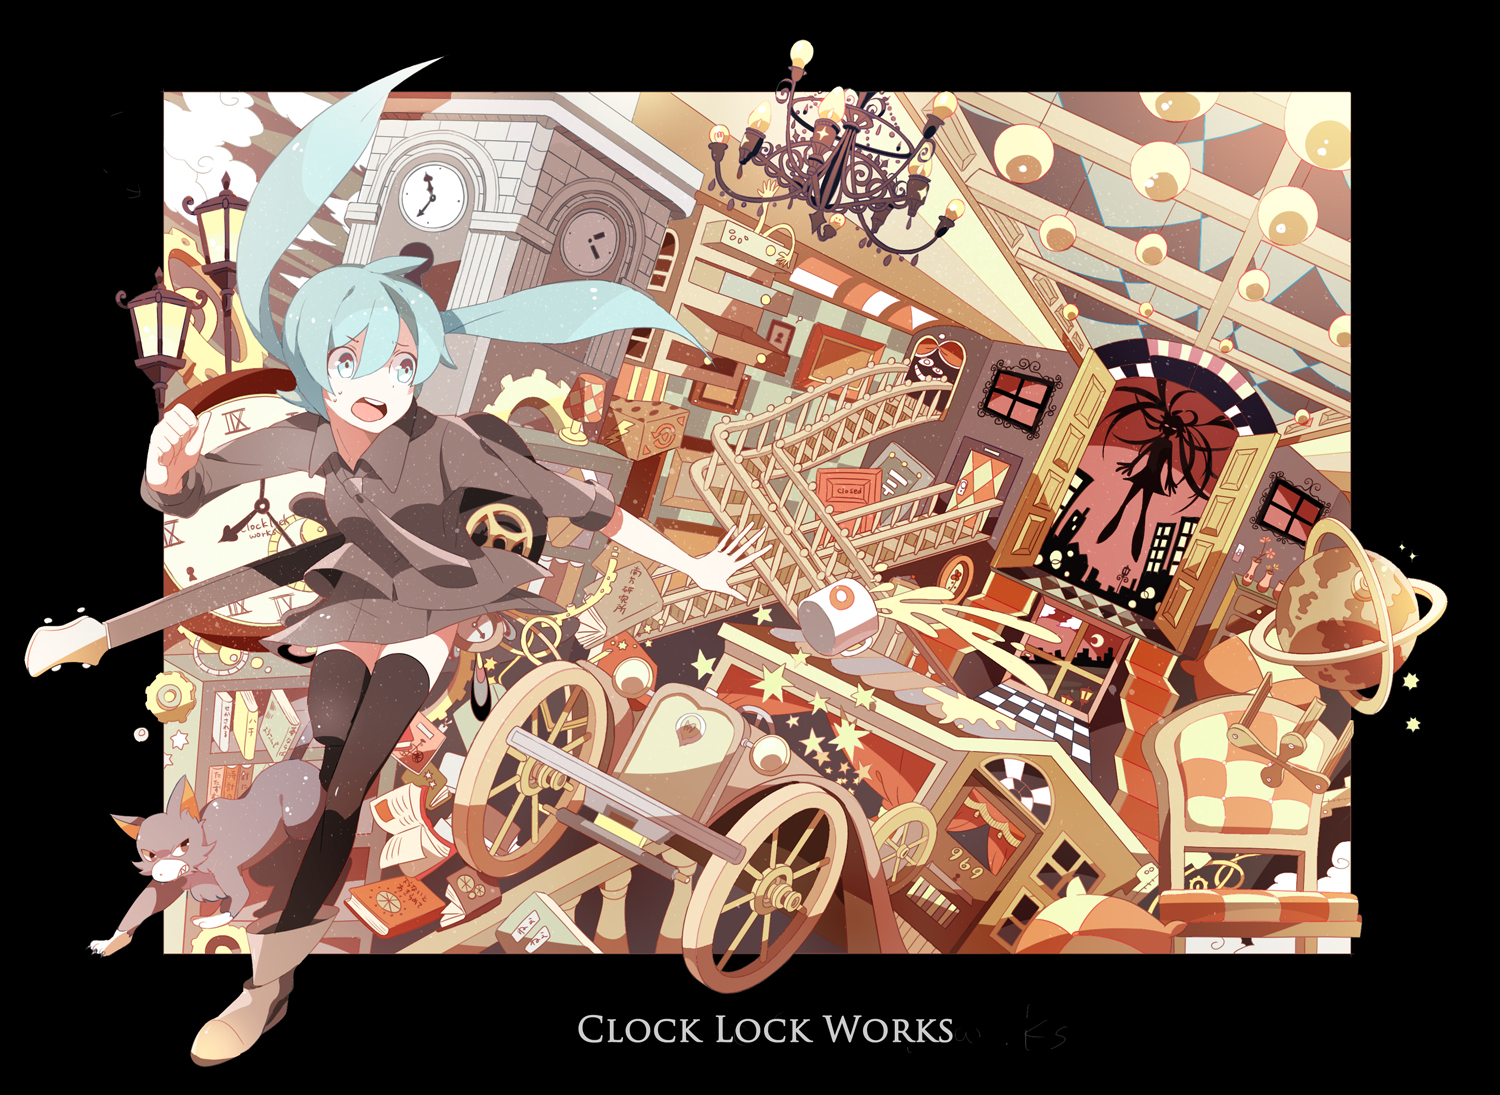 clock lock works by chamooi